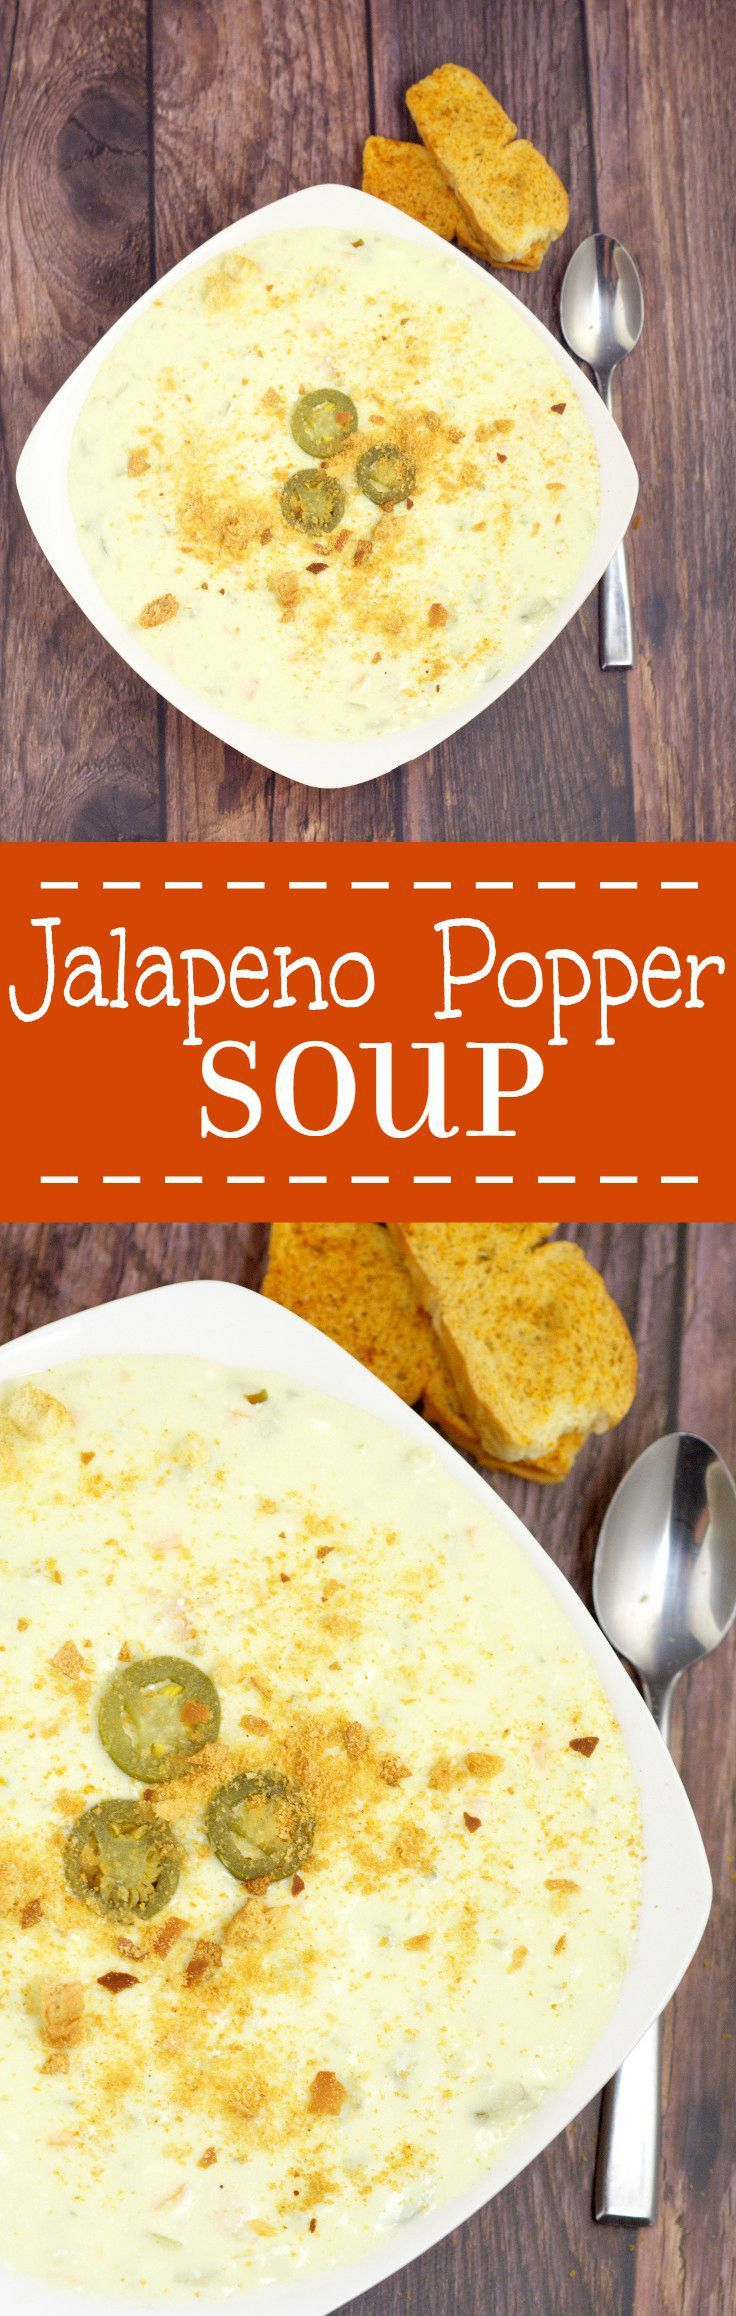 Creamy and warm with a kick of spicy, this Jalapeno Popper Soup recipe makes eating appetizers for dinner totally okay! Tastes just like the real thing, topped with crunchy garlic croutons for the perfect touch. Mmmm.... I love Poppers.  Would be delicious with some extra cheese!